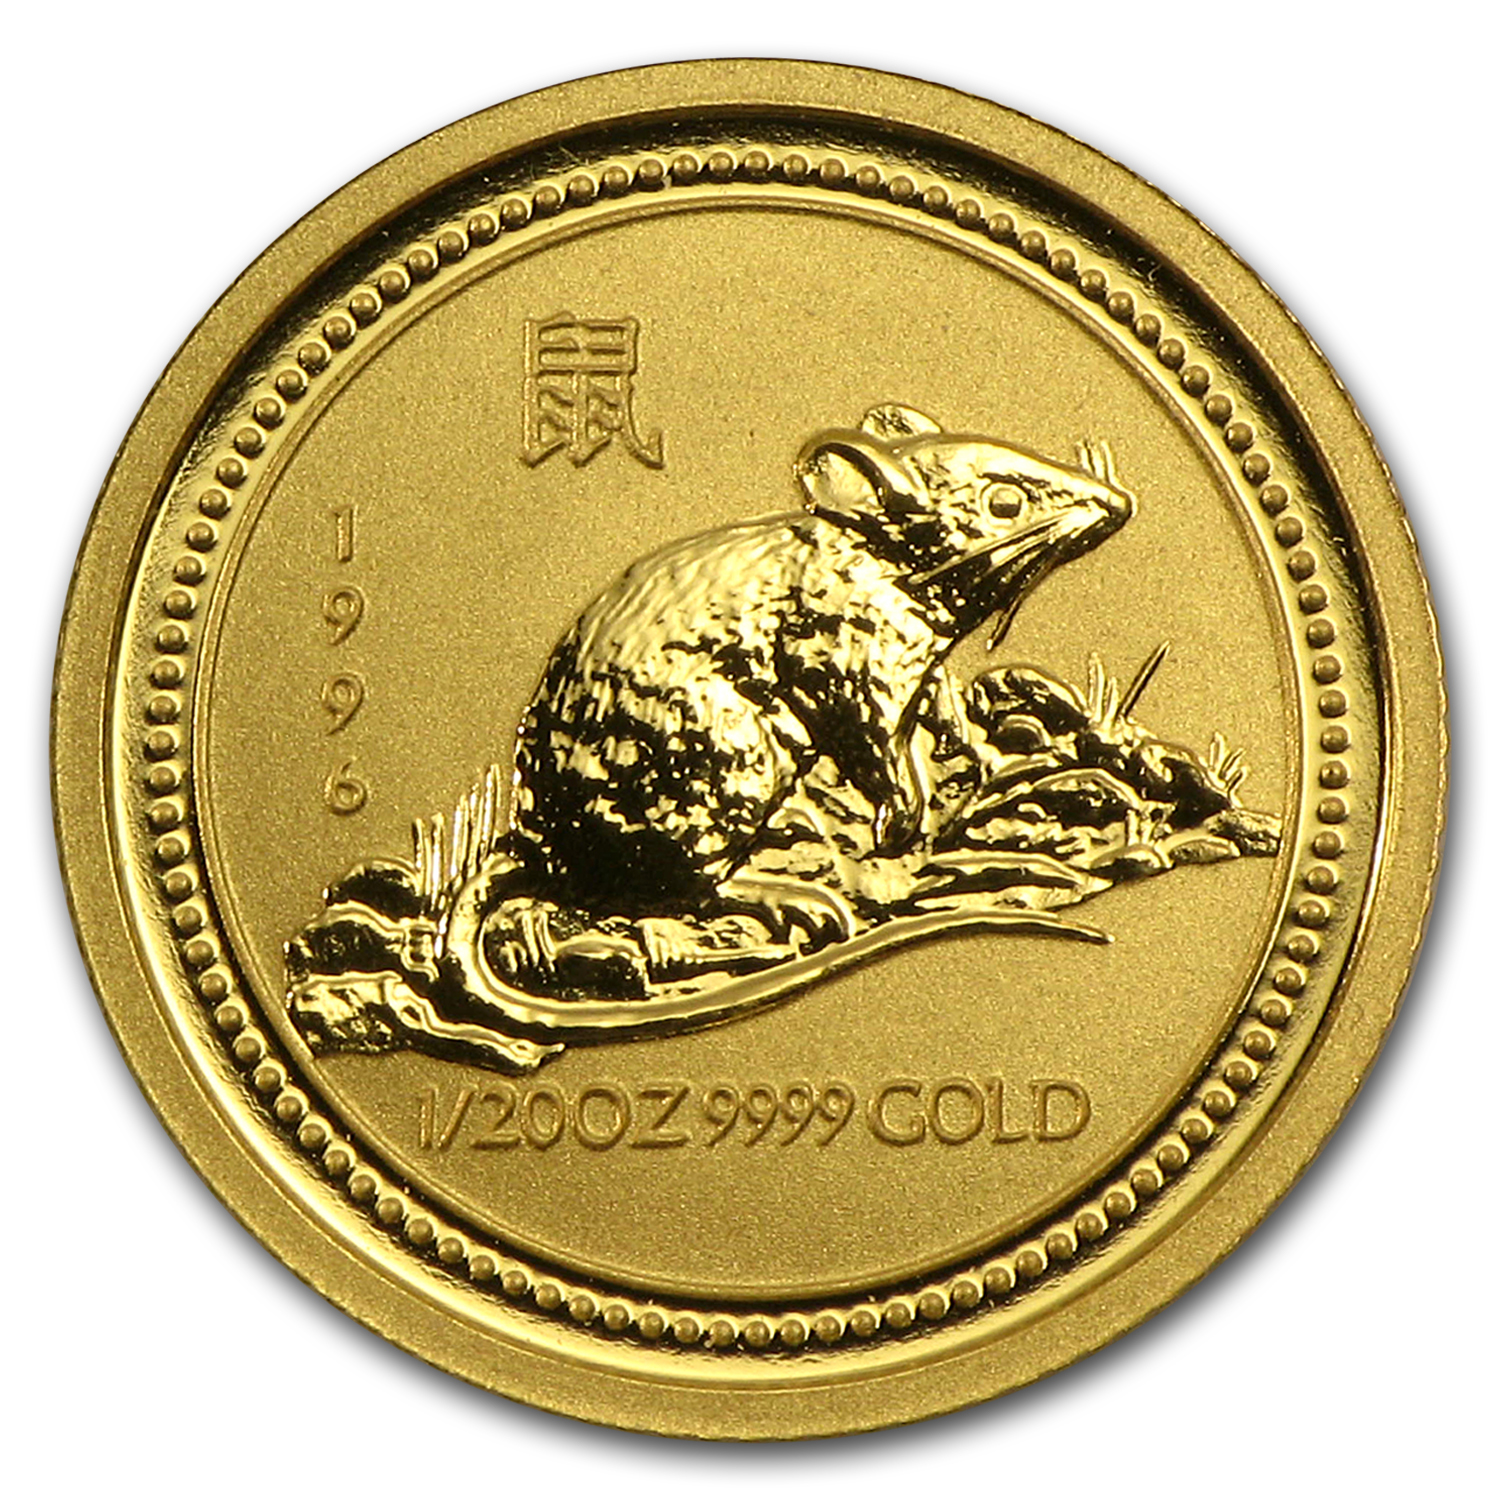 1996 1/20 oz Gold Year of the Rat Lunar Coin (Series I)